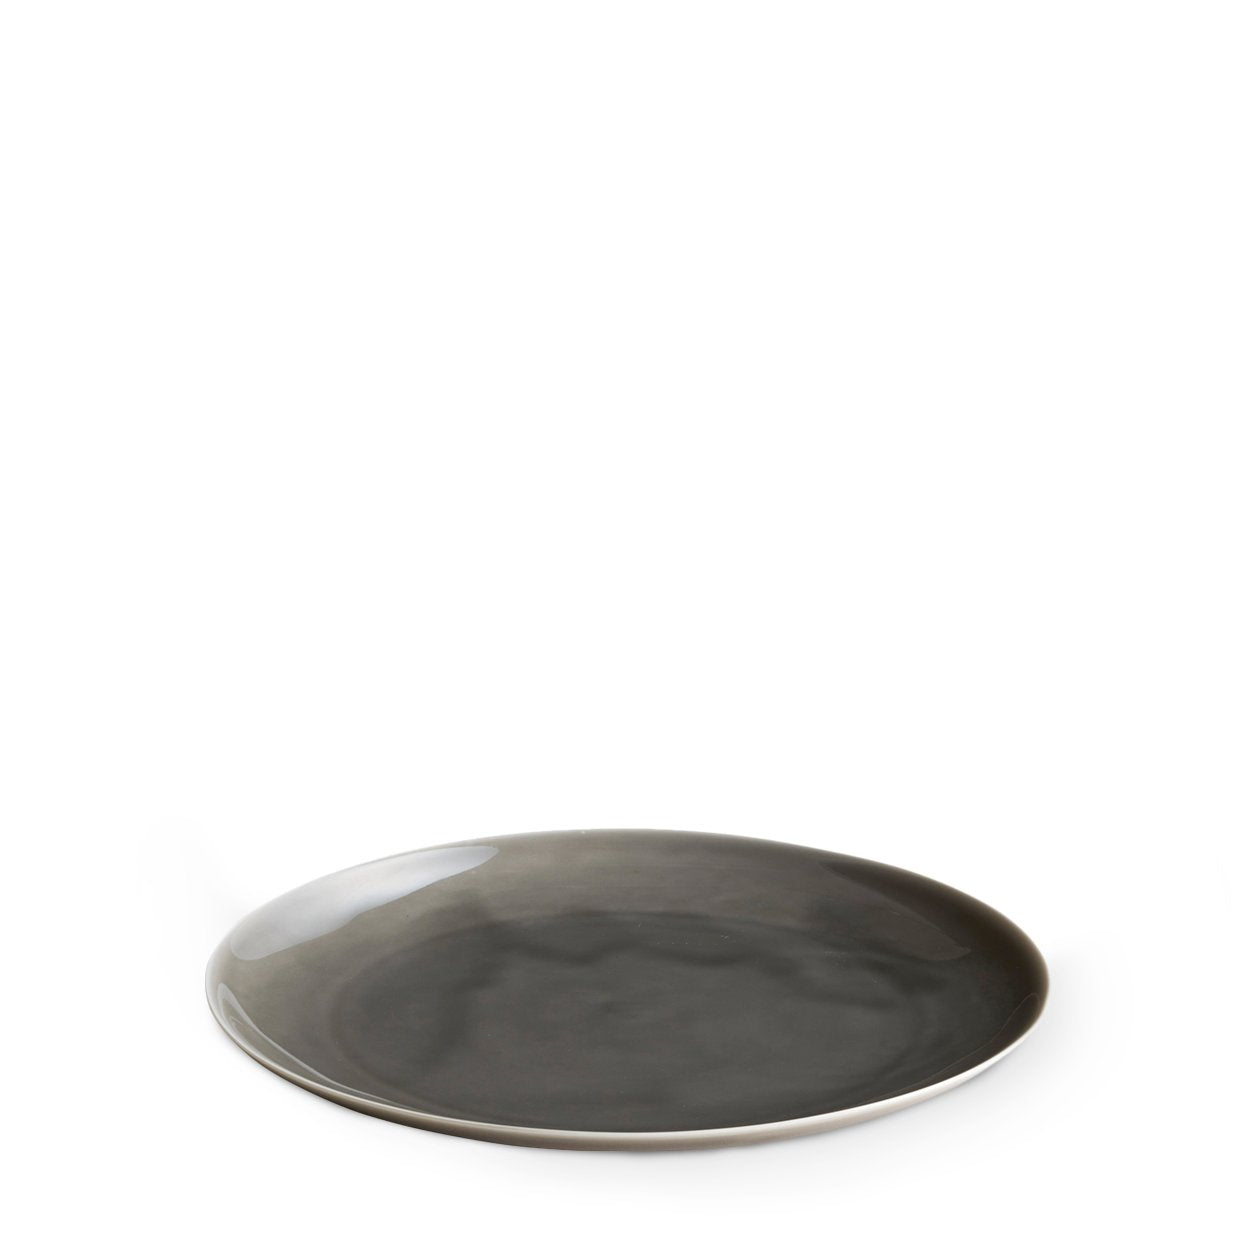 Dune Porcelain Medium Plate Grey